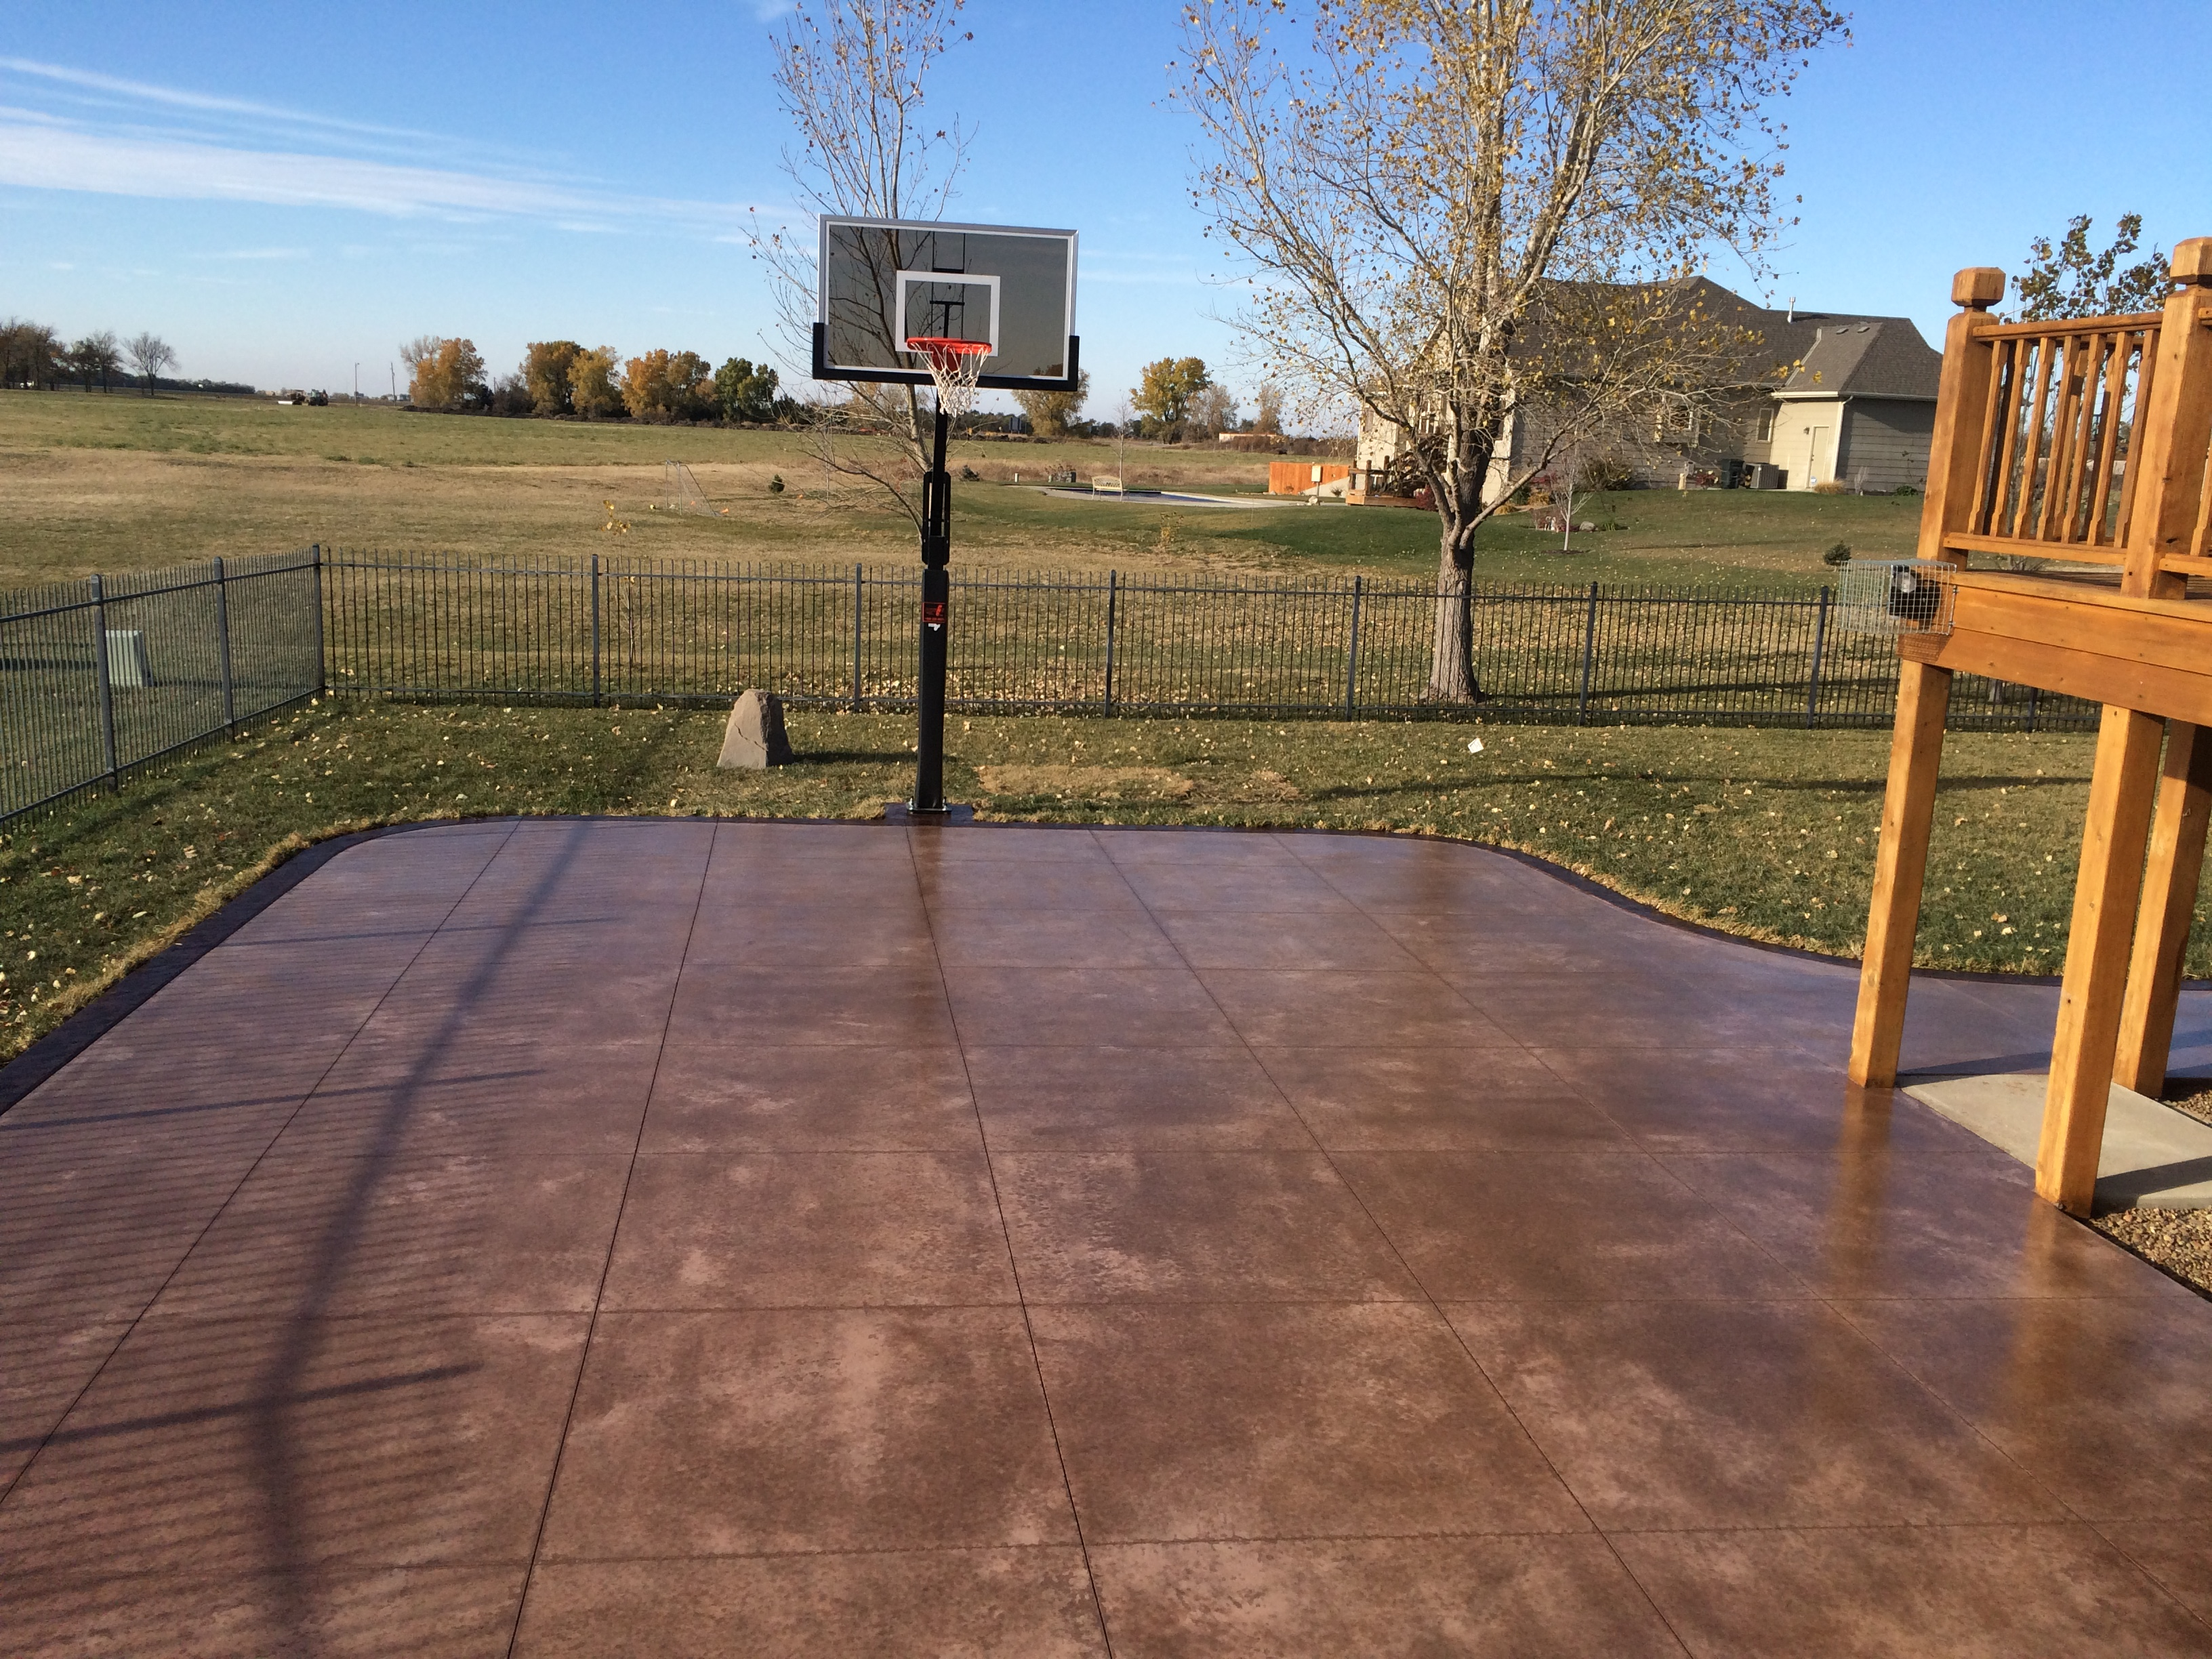 Basketball courts e j concrete and dirt work for How to build your own basketball court